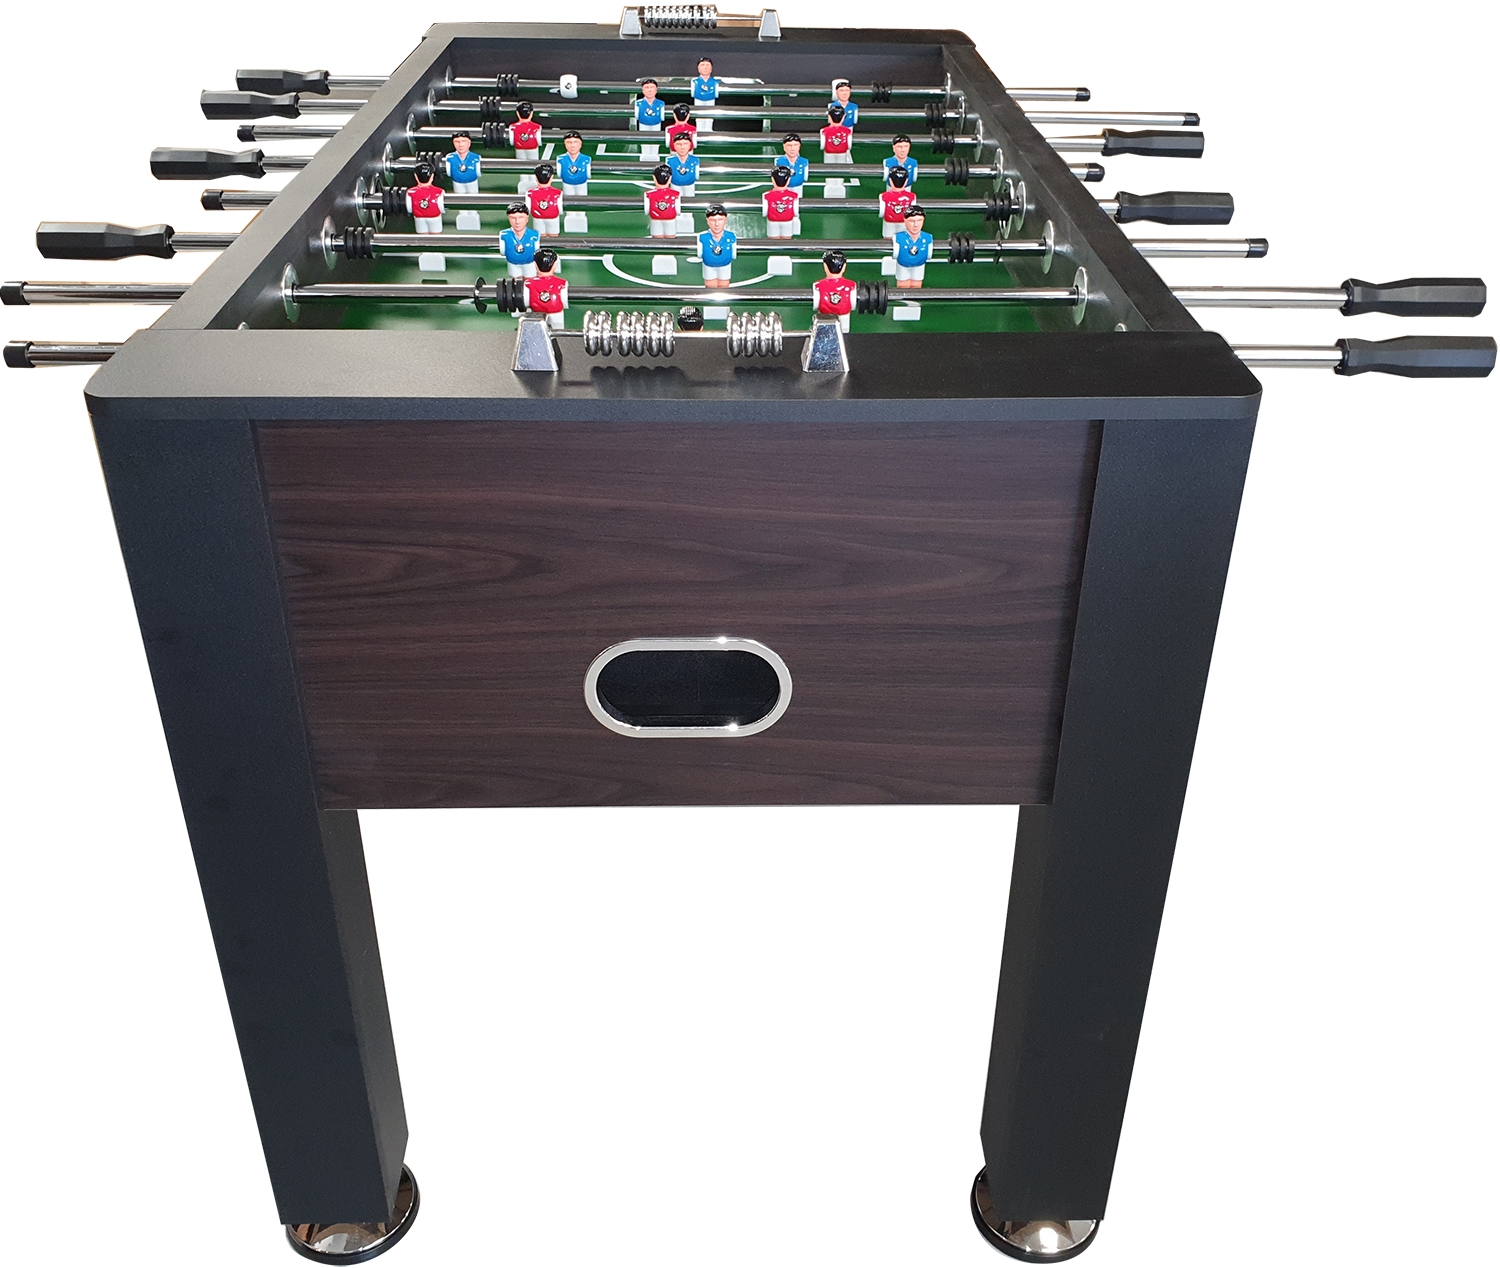 VC0198: Voetbaltafel TopTable Victory #3